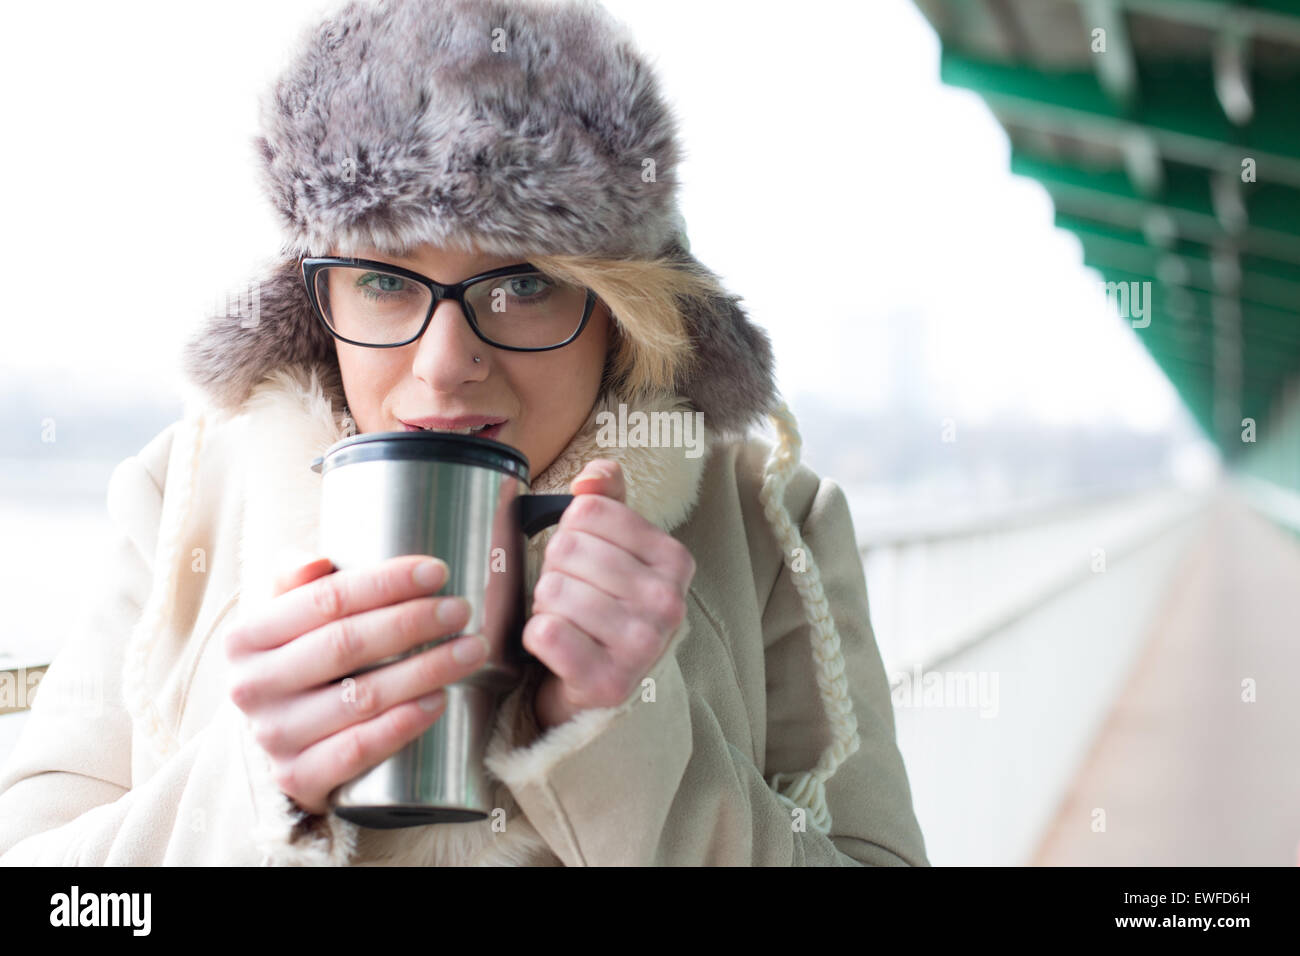 Portrait of woman drinking coffee from insulated drink container during winter - Stock Image